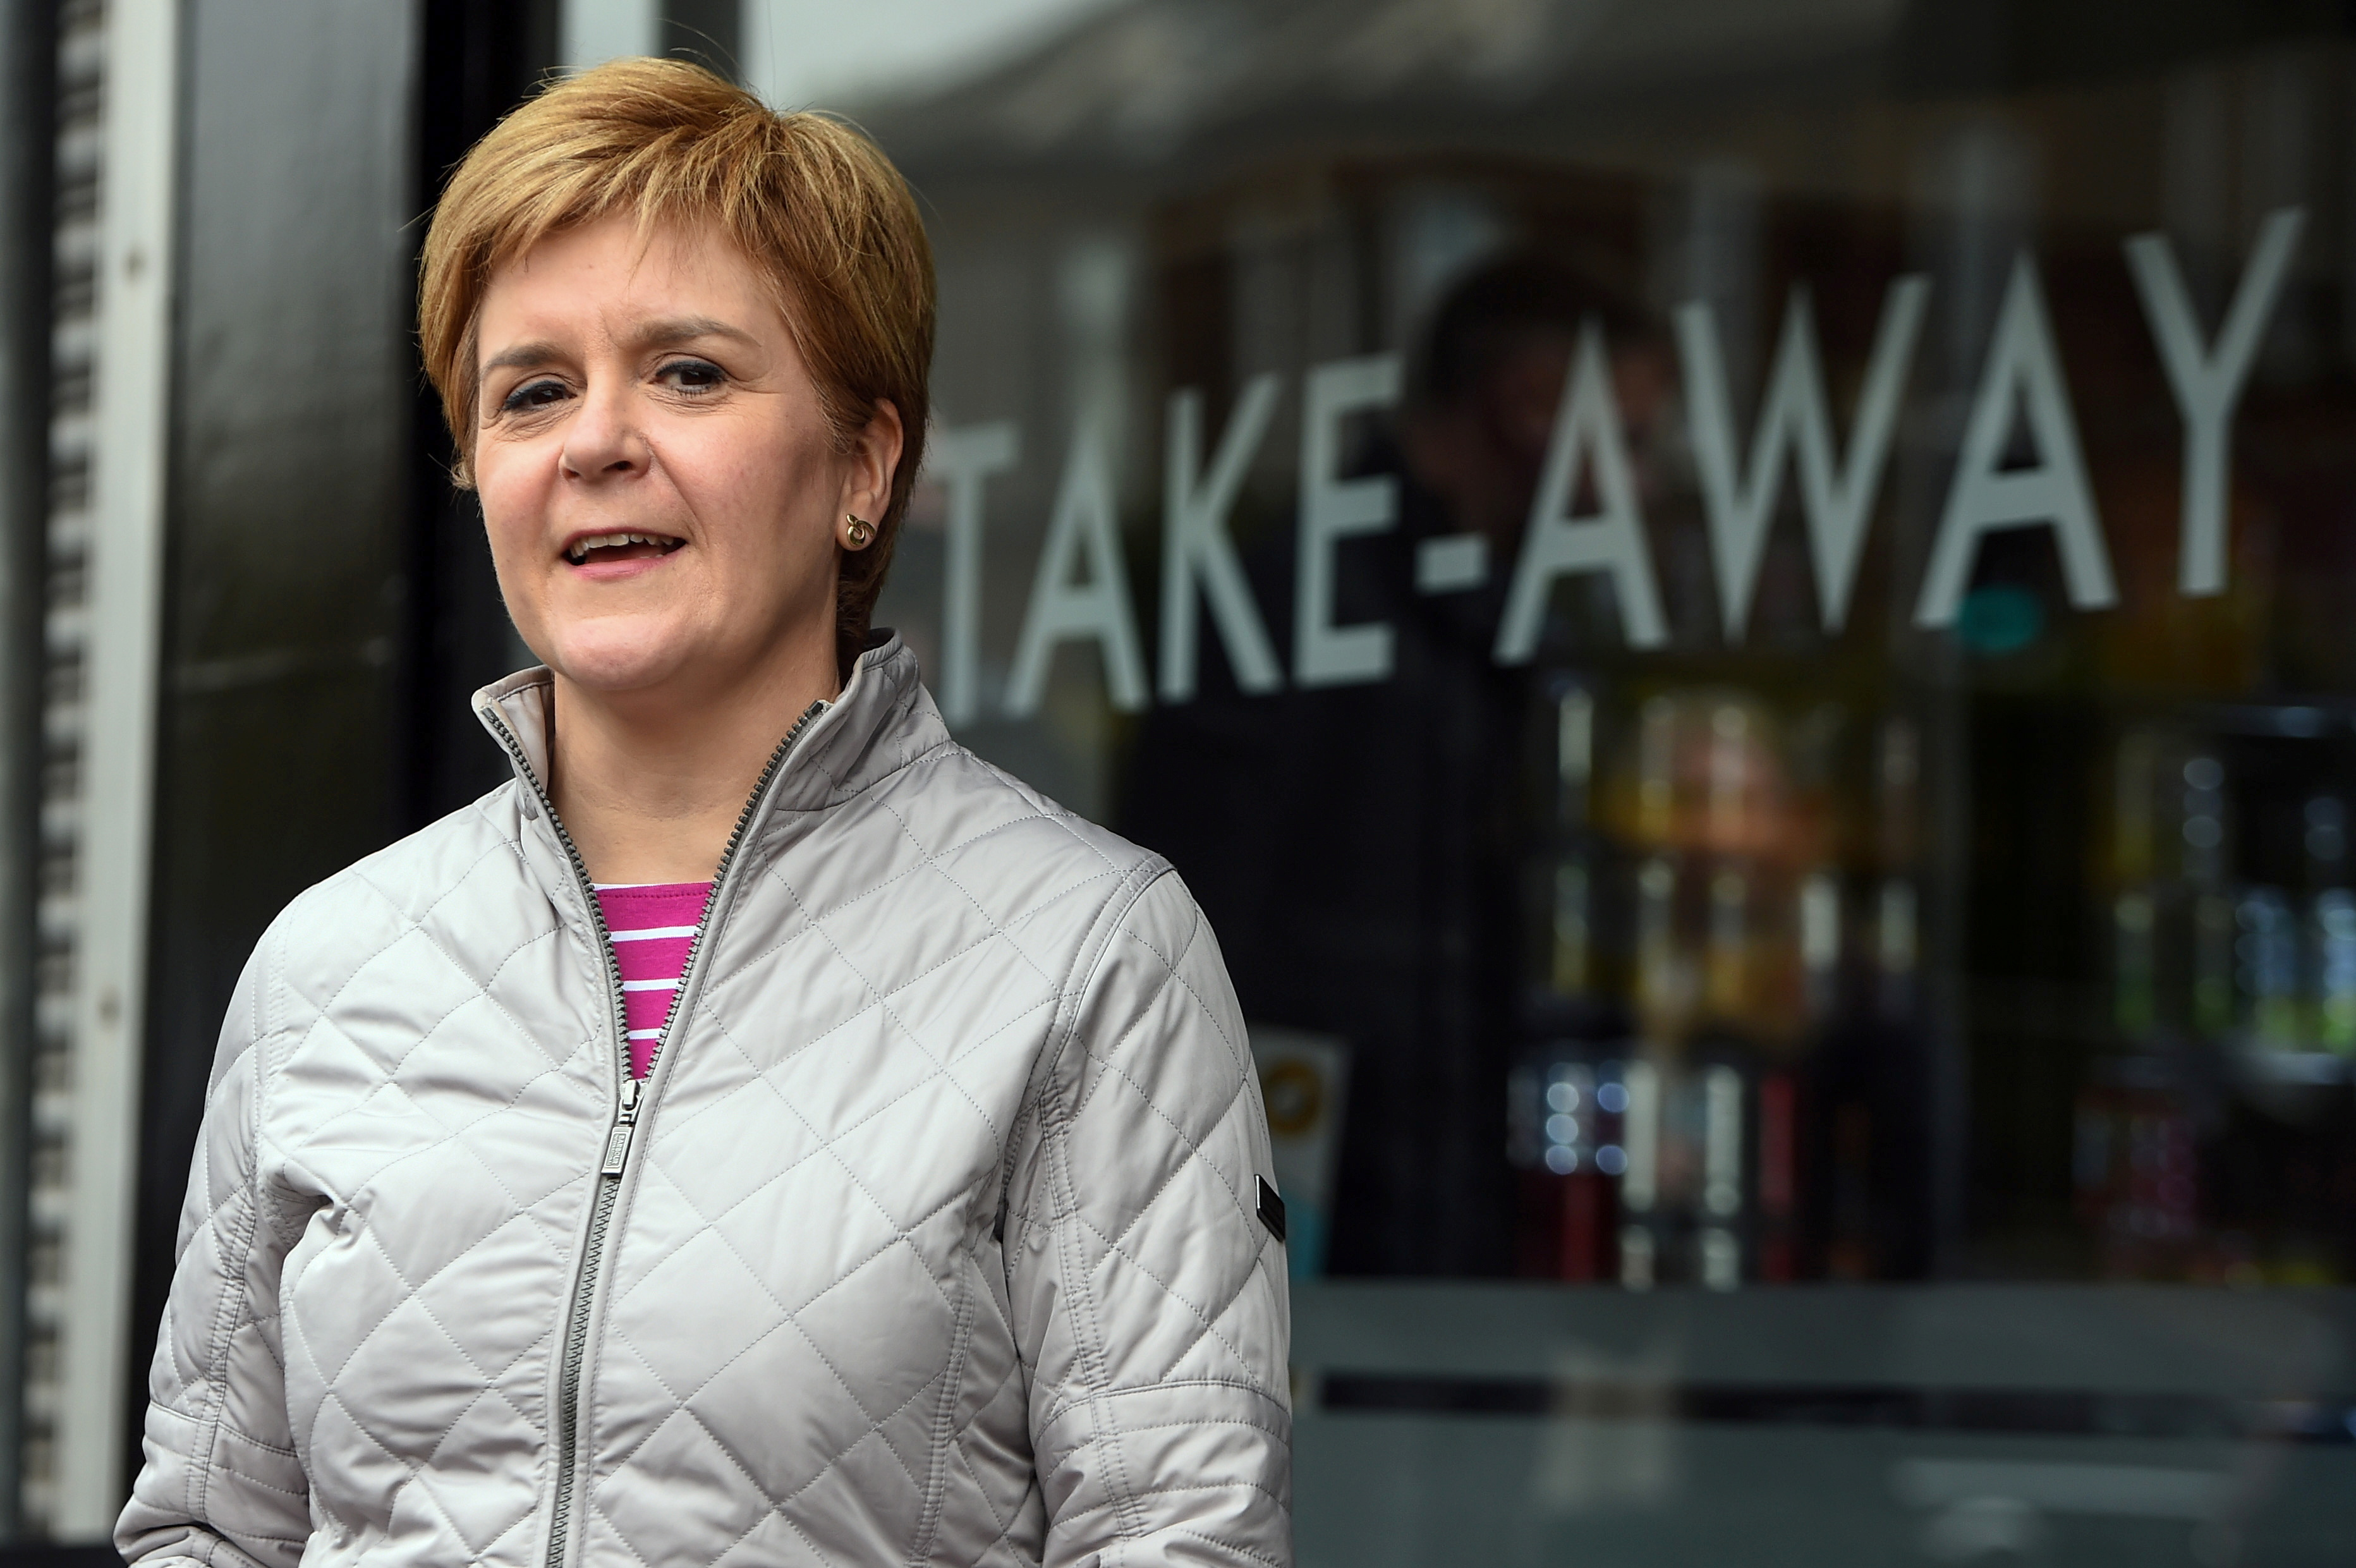 Scottish National Party leader and First Minister Nicola Sturgeon campaigns ahead of the Scottish Parliament election in Glasgow, Scotland, Britain May 2, 2021. Andy Buchanan/Pool via REUTERS